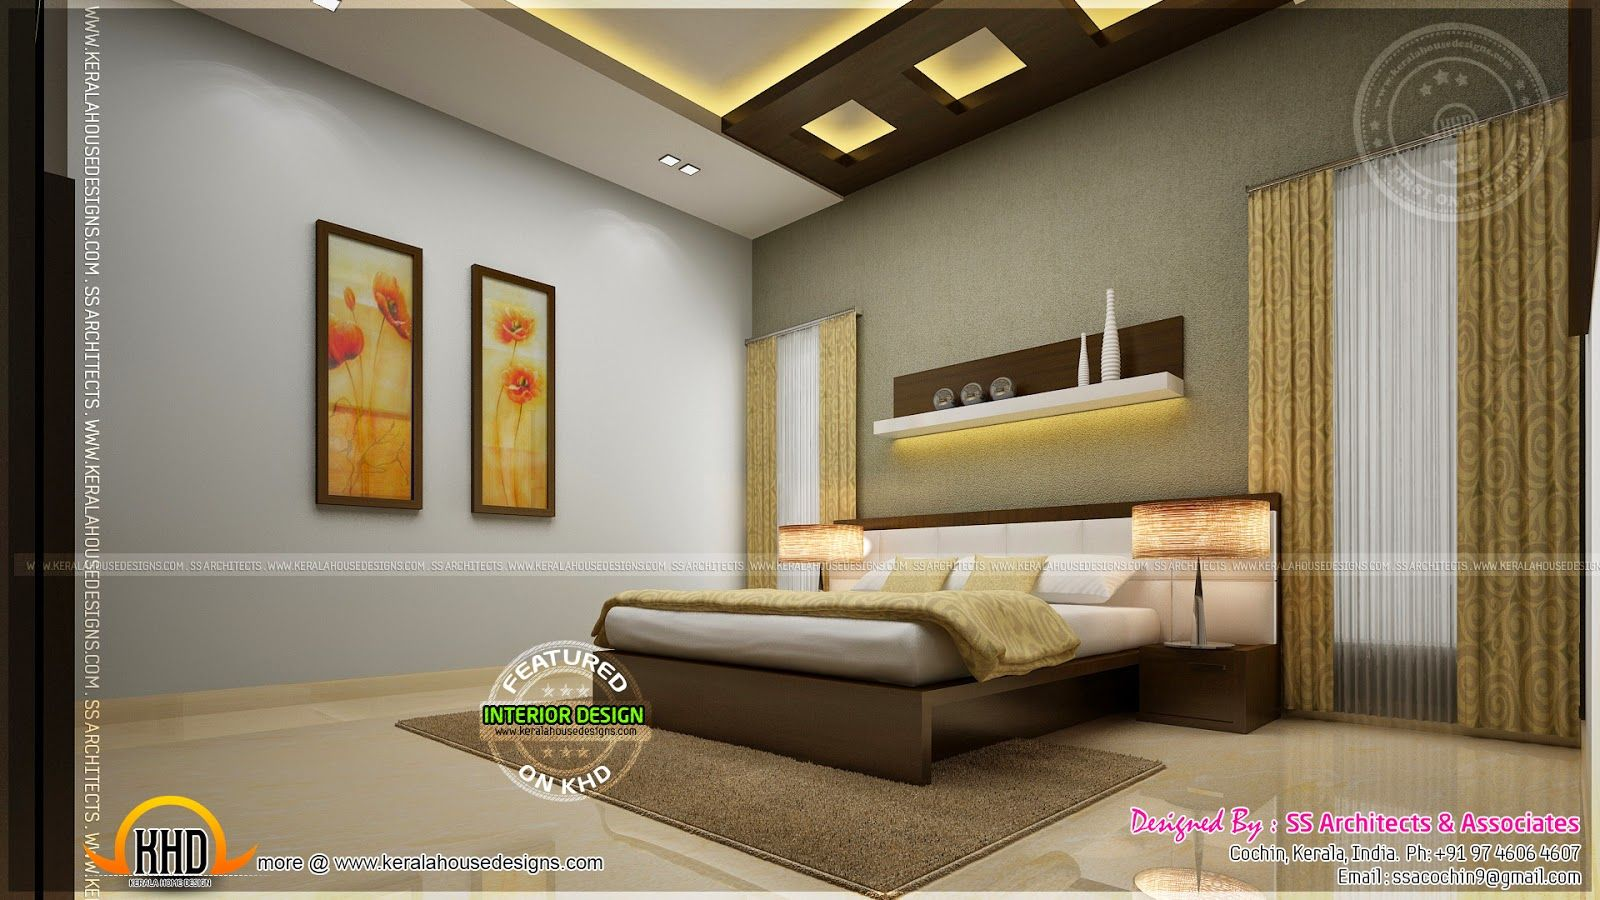 Indian Master Bedroom Interior Design  Google Search  Saravanan Glamorous Bedroom Interior Design In India Inspiration